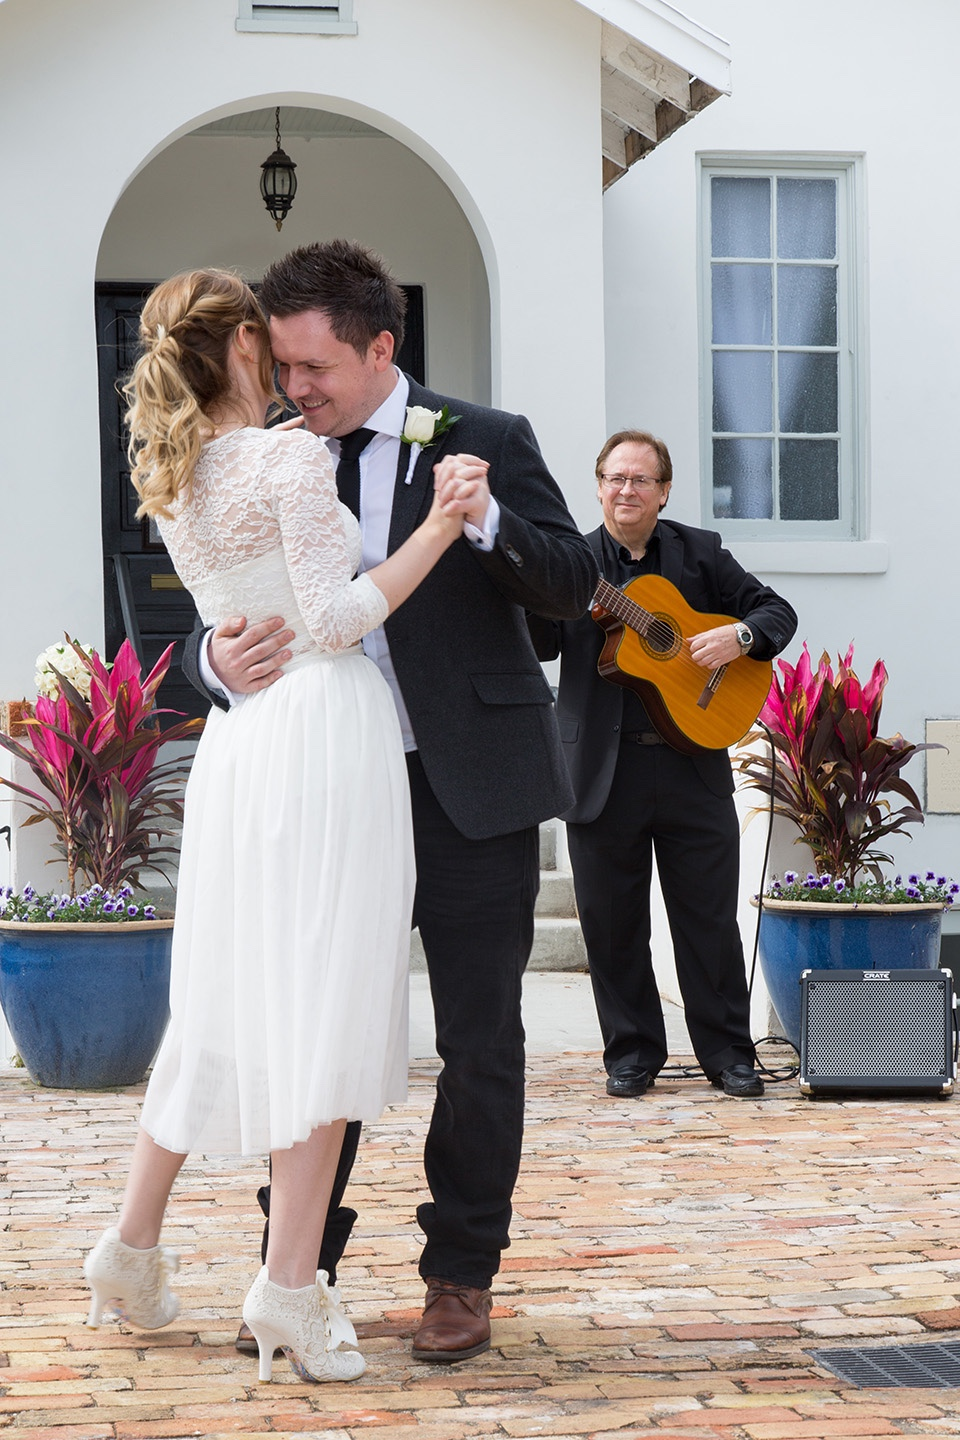 Kirstie and Mark's first dance outside their destination wedding venue in Central Florida